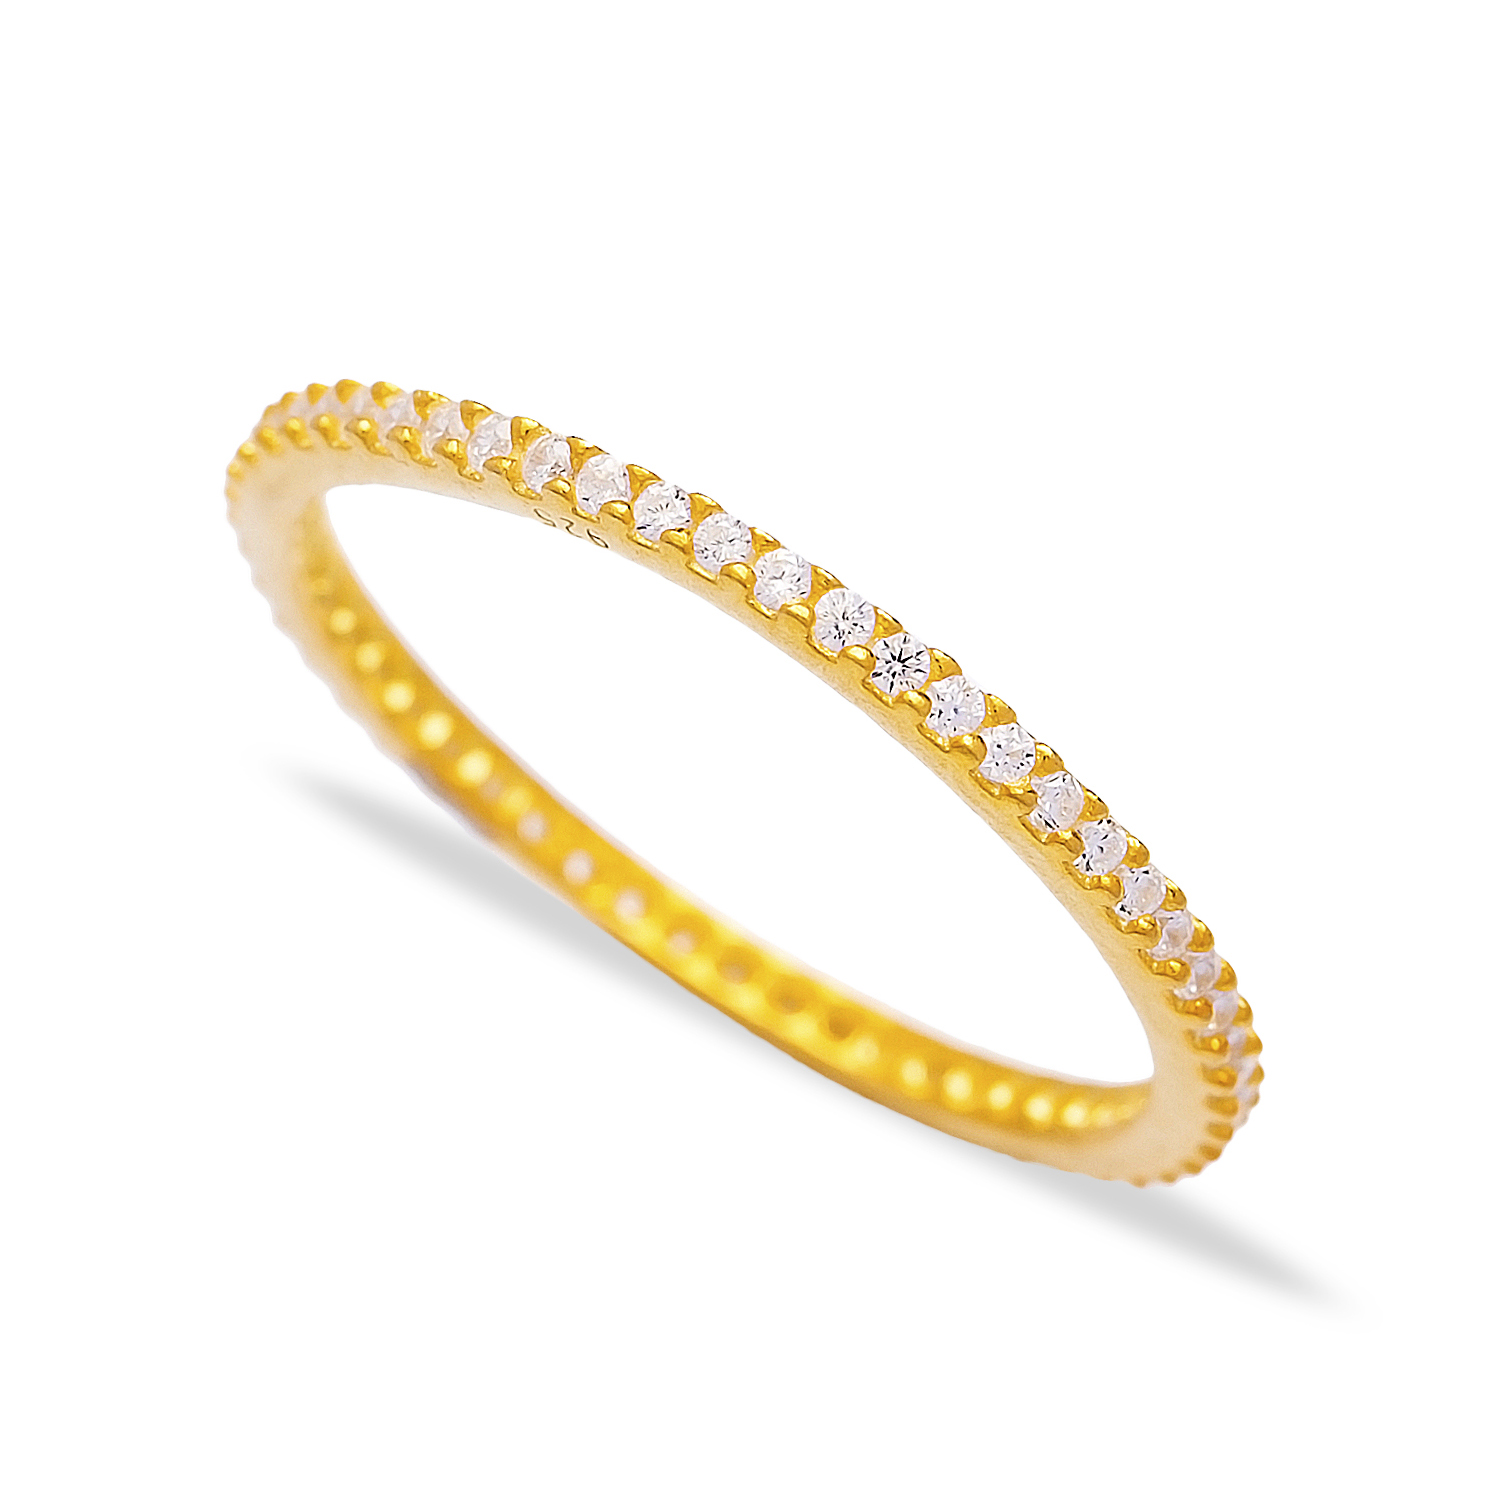 Gold band staking ring